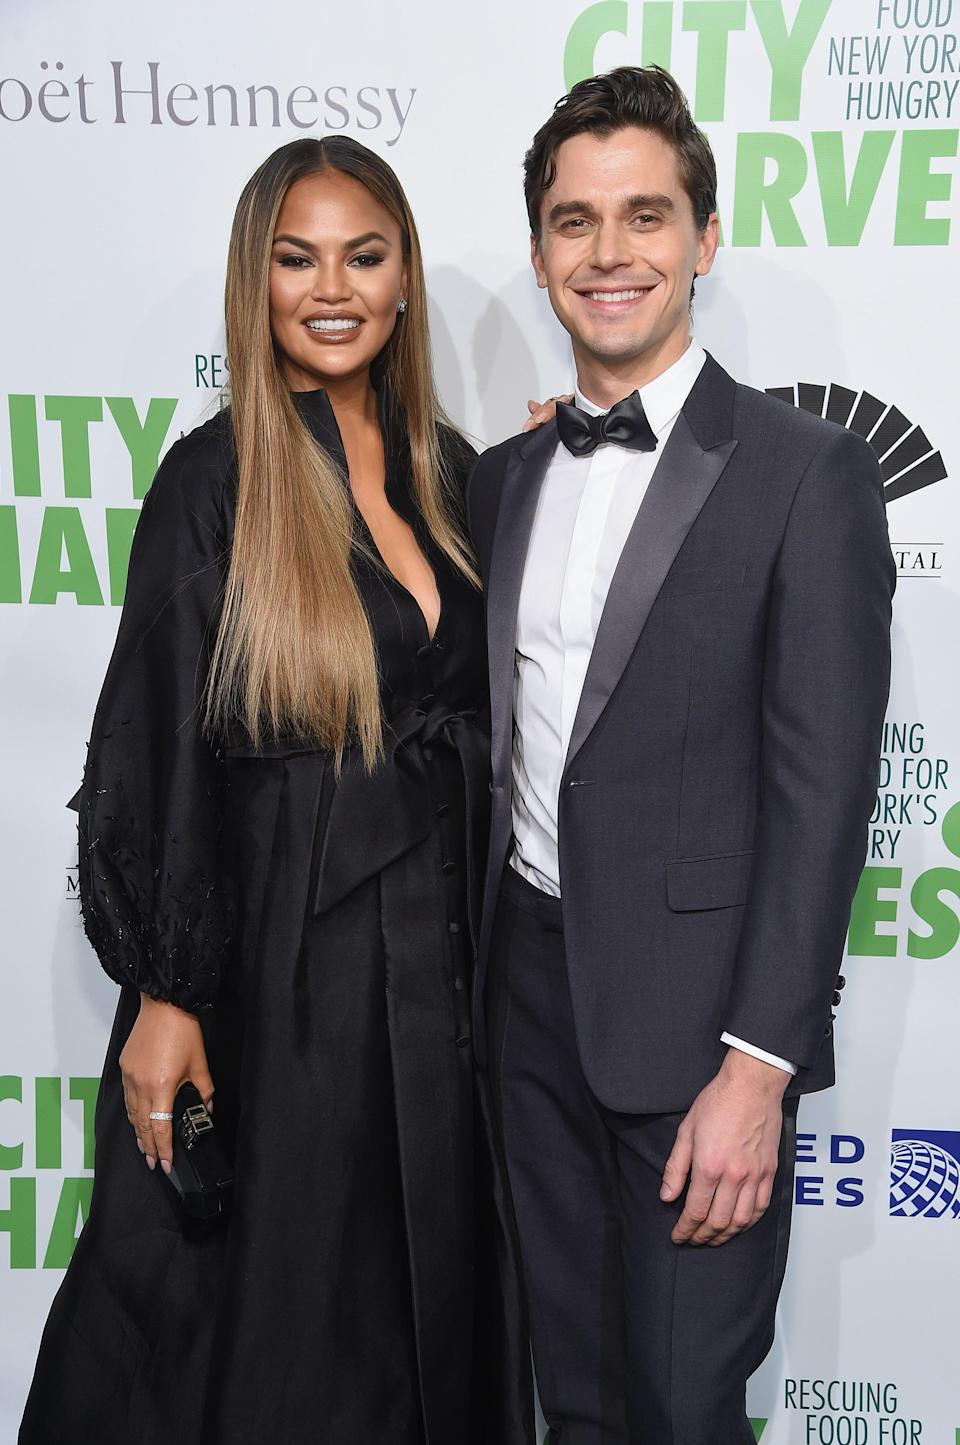 <p>On April 30, a group including Richard Gere, Geoffrey and Margaret Zakarian, Jilly Stephens, Eric Ripert, Anita Lo, and more flocked to Cipriani 42nd Street in Manhattan for City Harvest's 36th annual gala. The evening, hosted by Chrissy Teigen and Antoni Porowski, featured a performance by Emmy Award winner Darren Criss, and raised more than $4.1 million for City Harvest, New York City's largest food-rescue organization.</p>